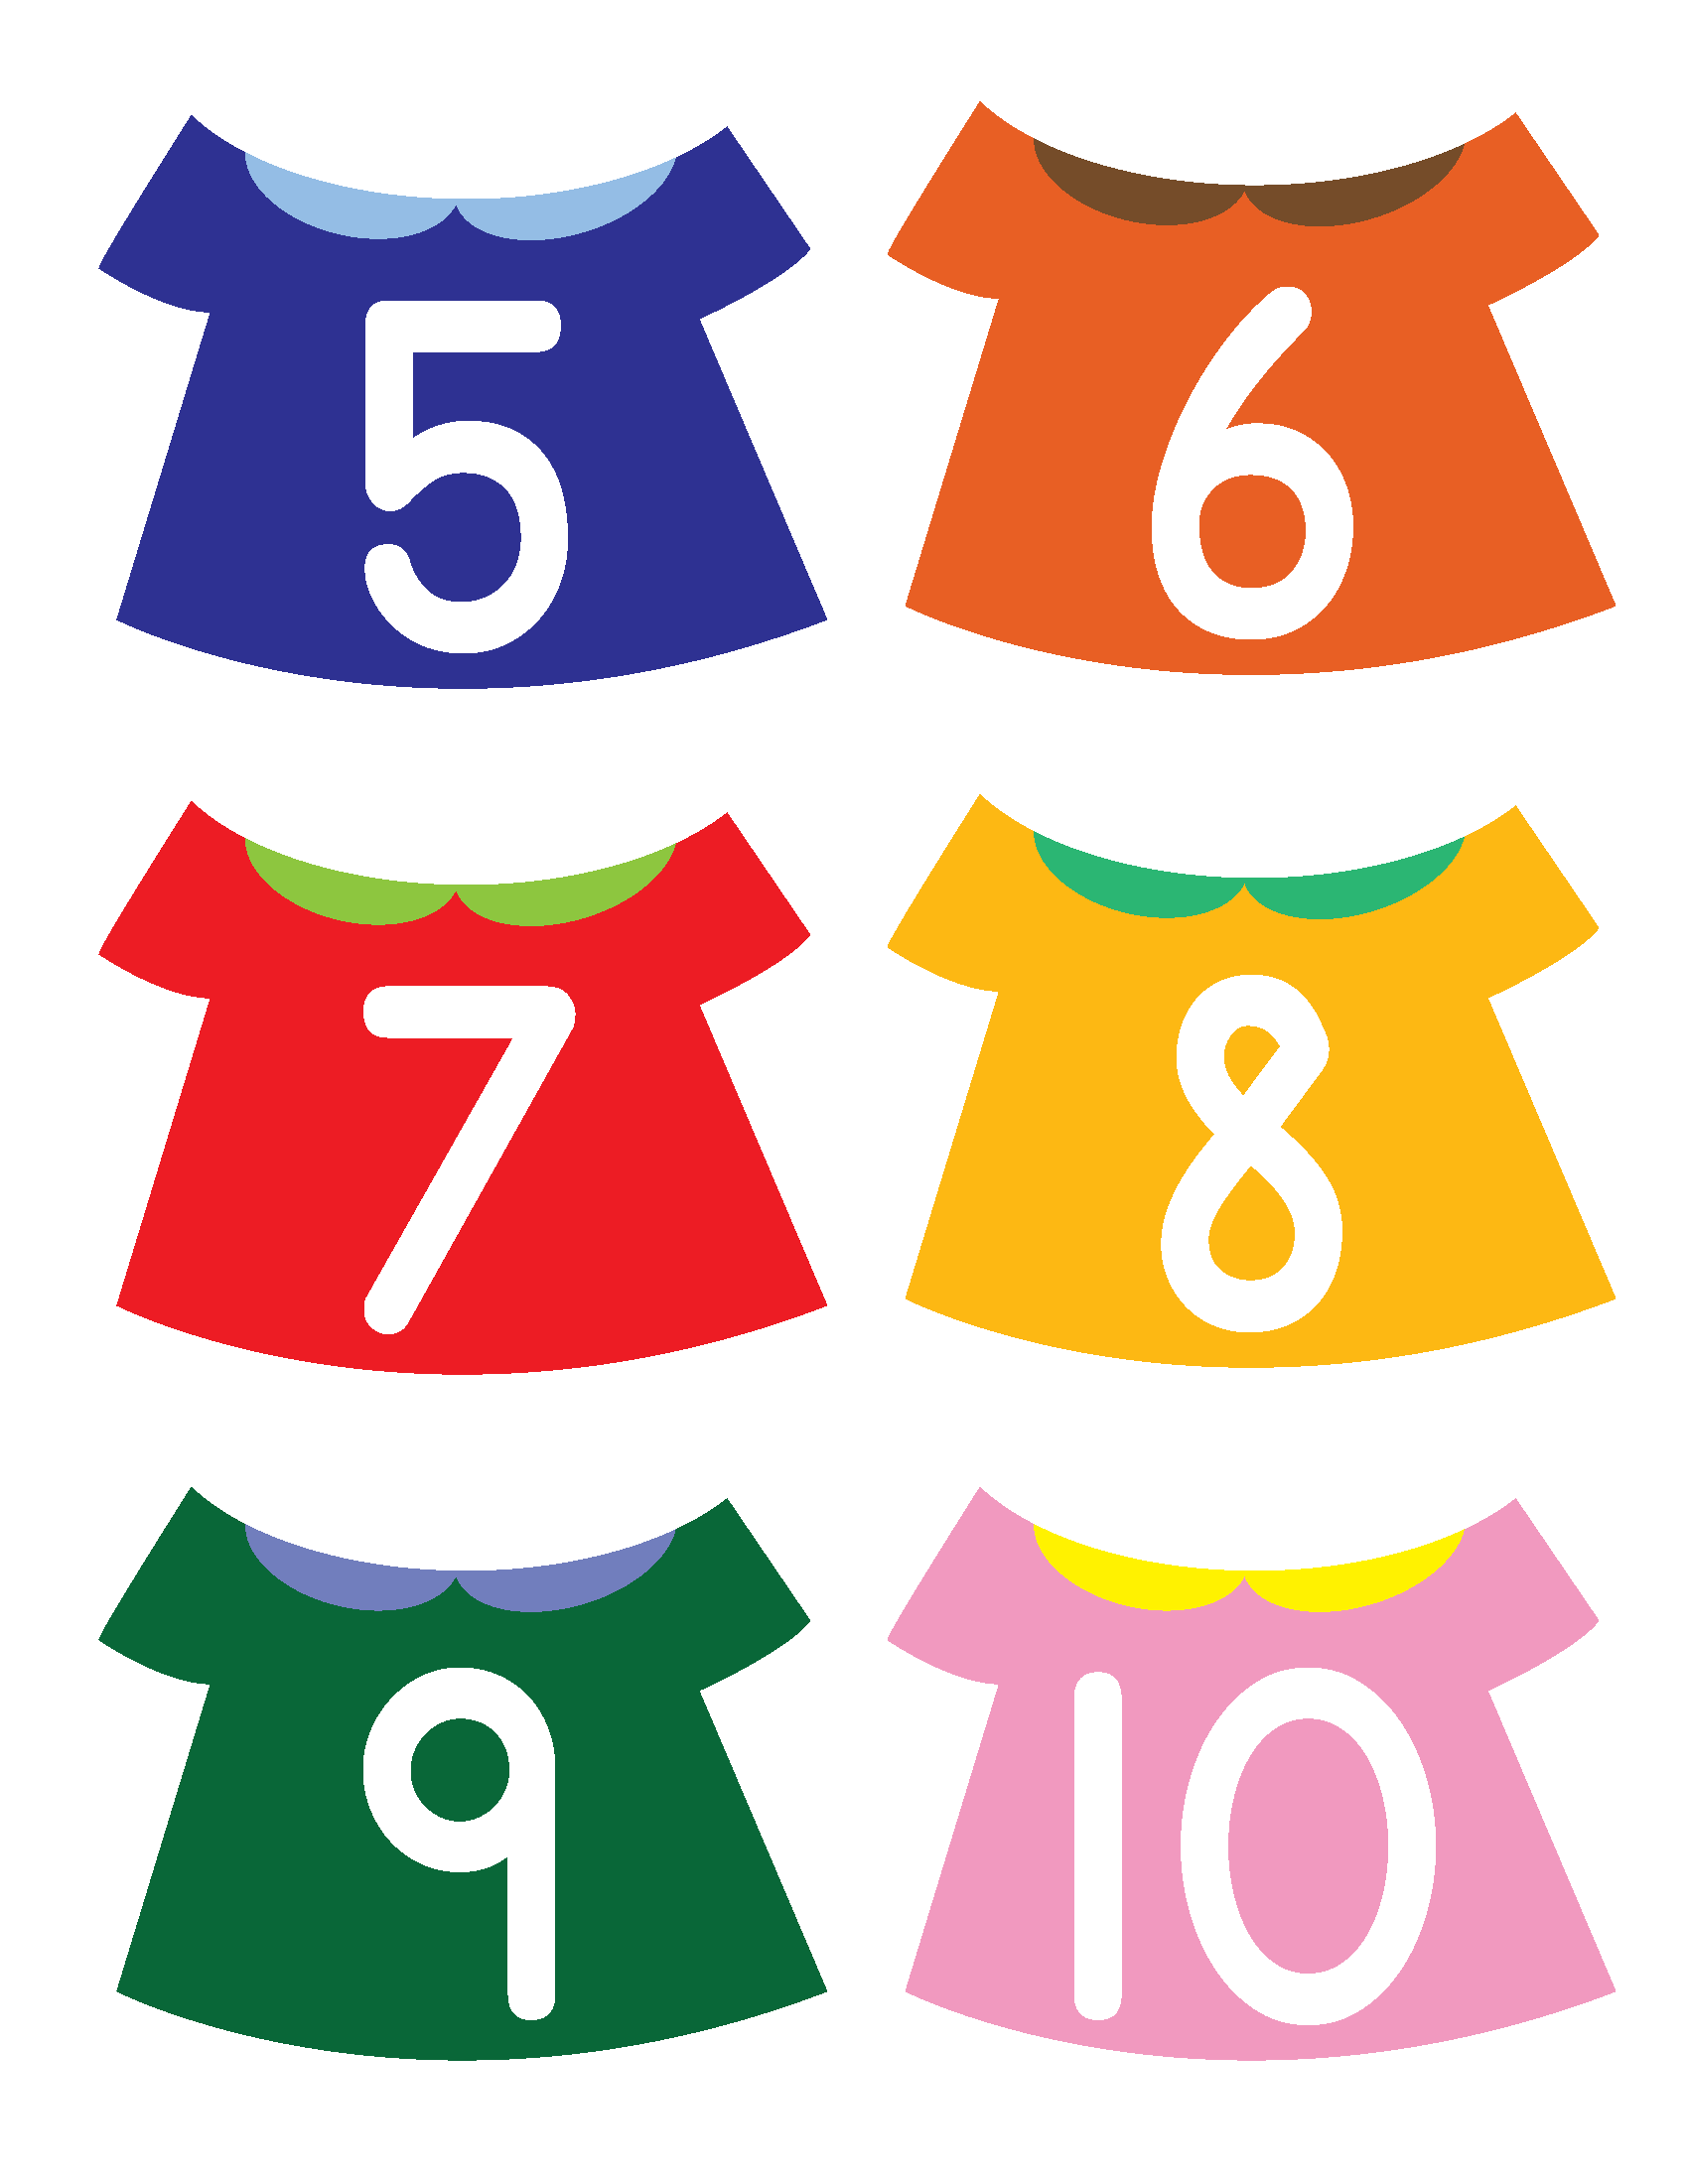 Put The Numbers On The Clothesline